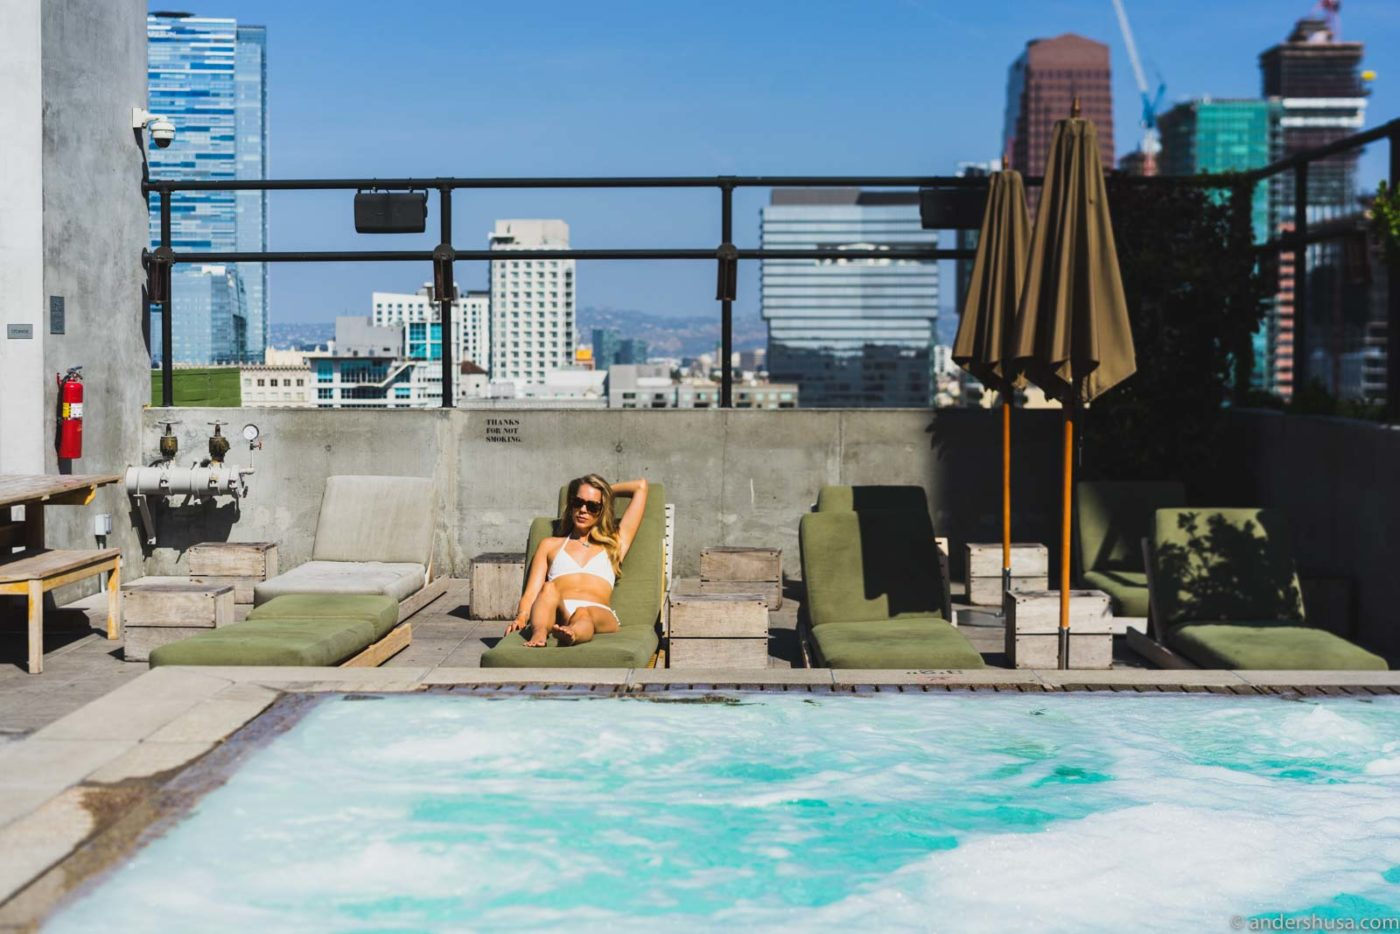 Ace hotel downtown dtla los angeles california usa hipster for Hipster hotel